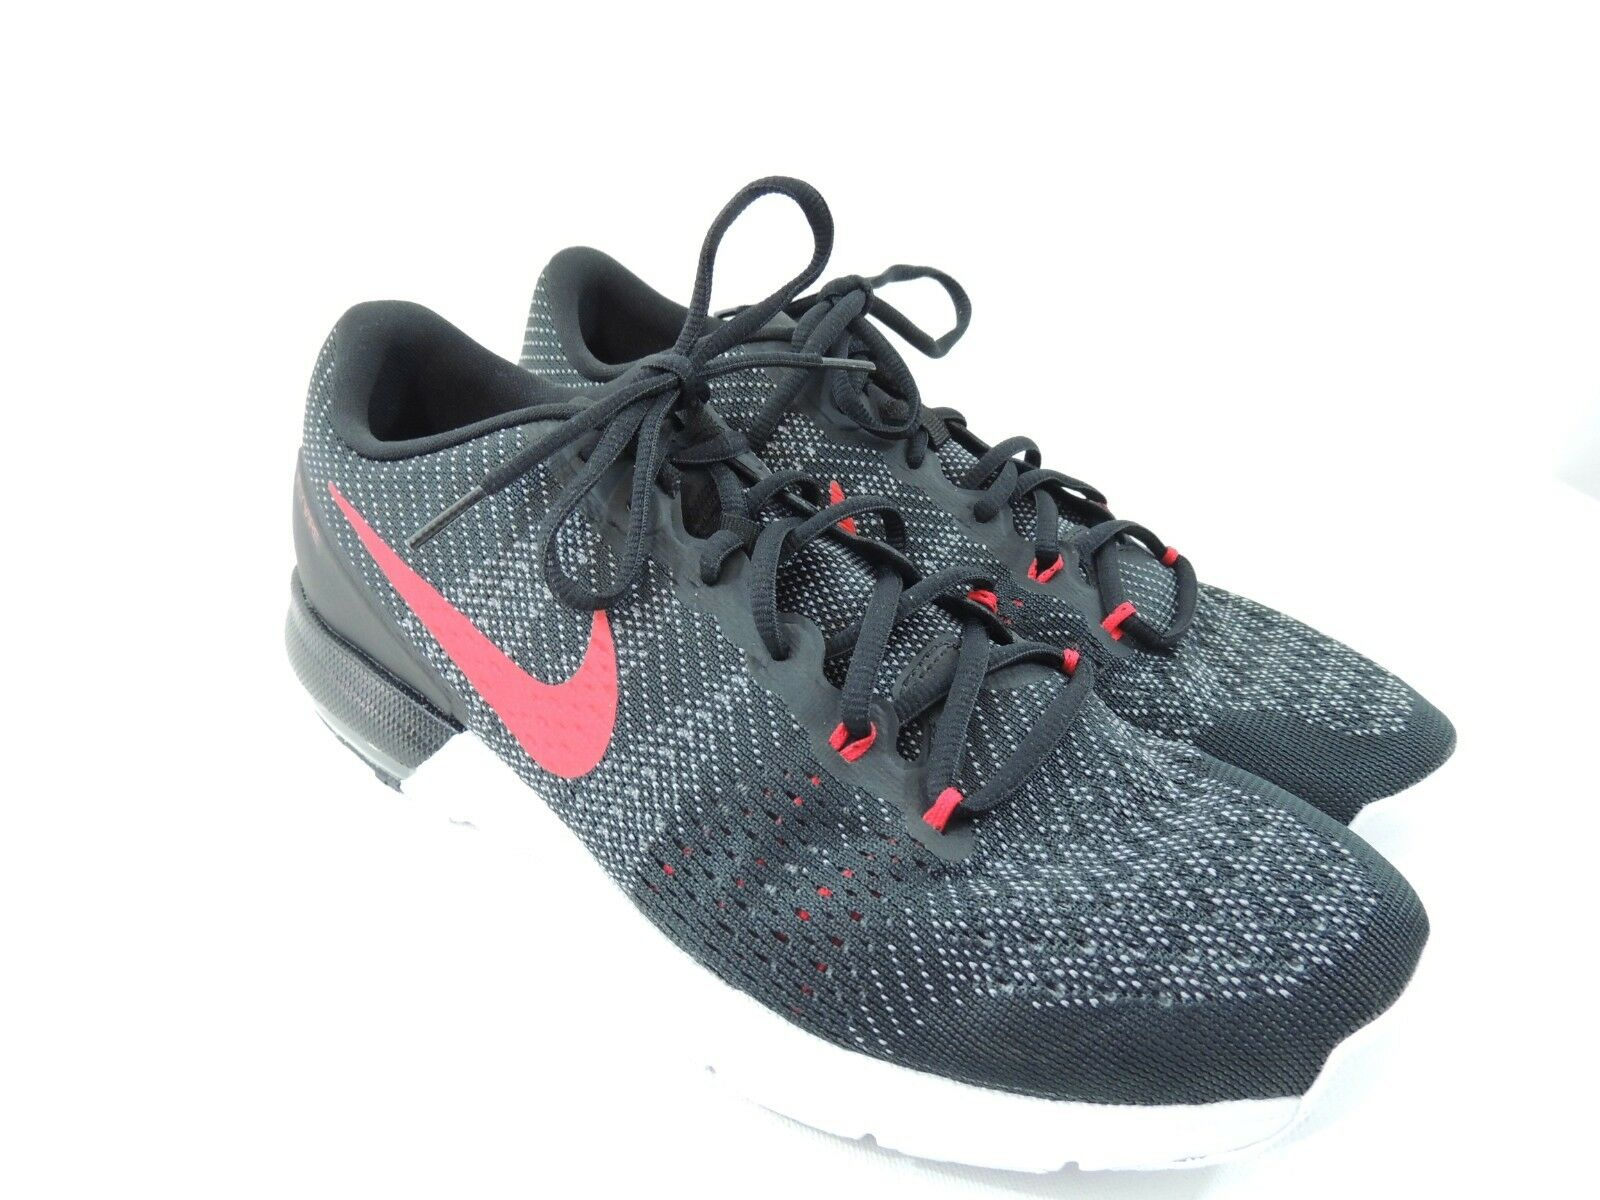 Nike Mens Air Max Typha Running shoes Black Red White 820198-010 Size 11.5